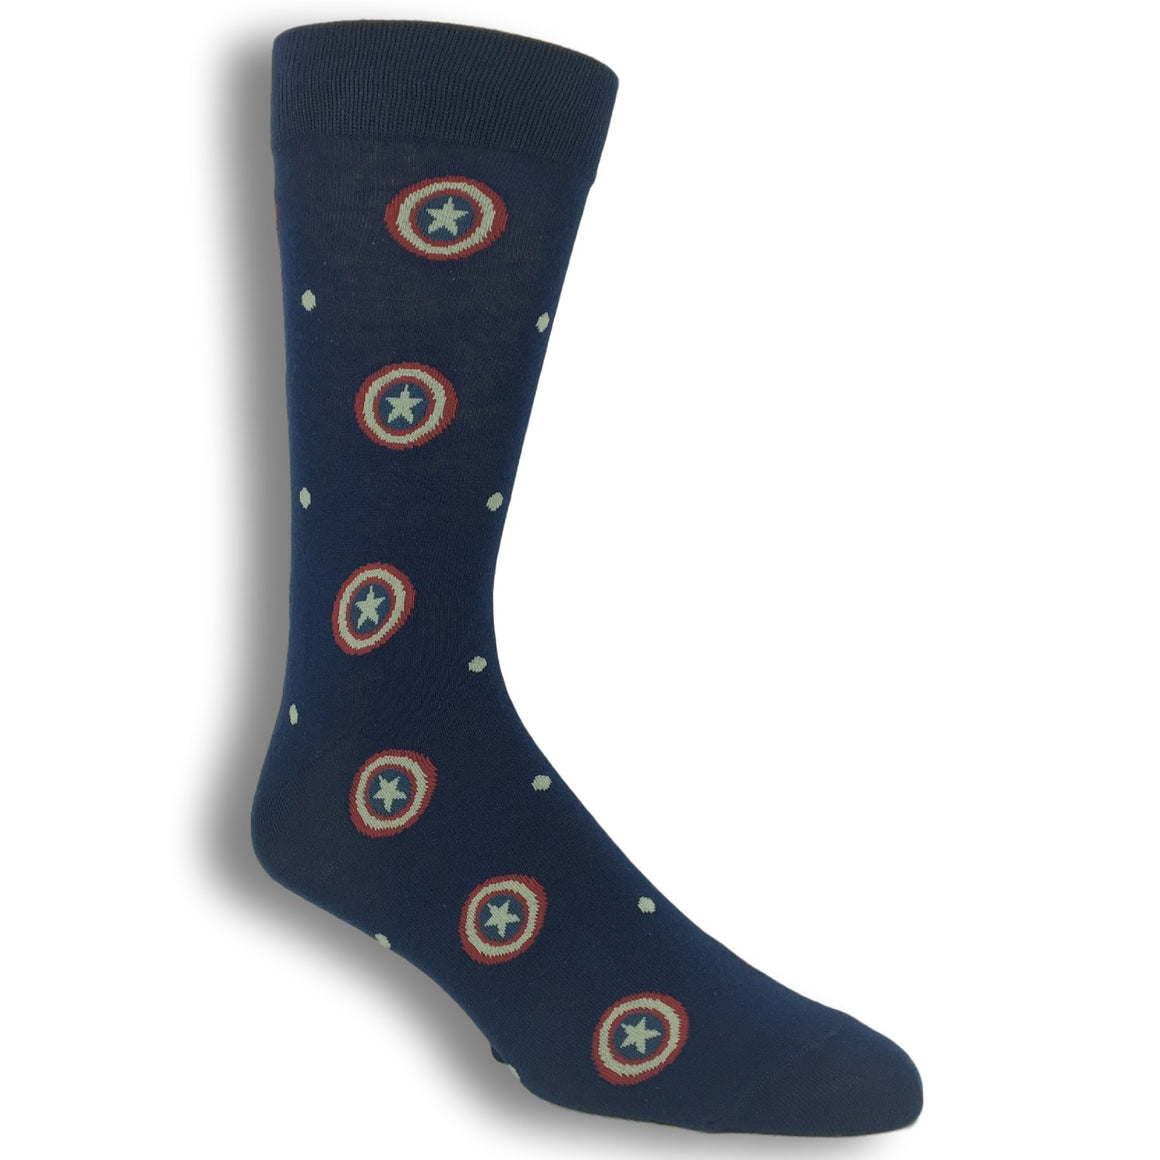 Marvel Captain America Superhero Dress Socks - The Sock Spot